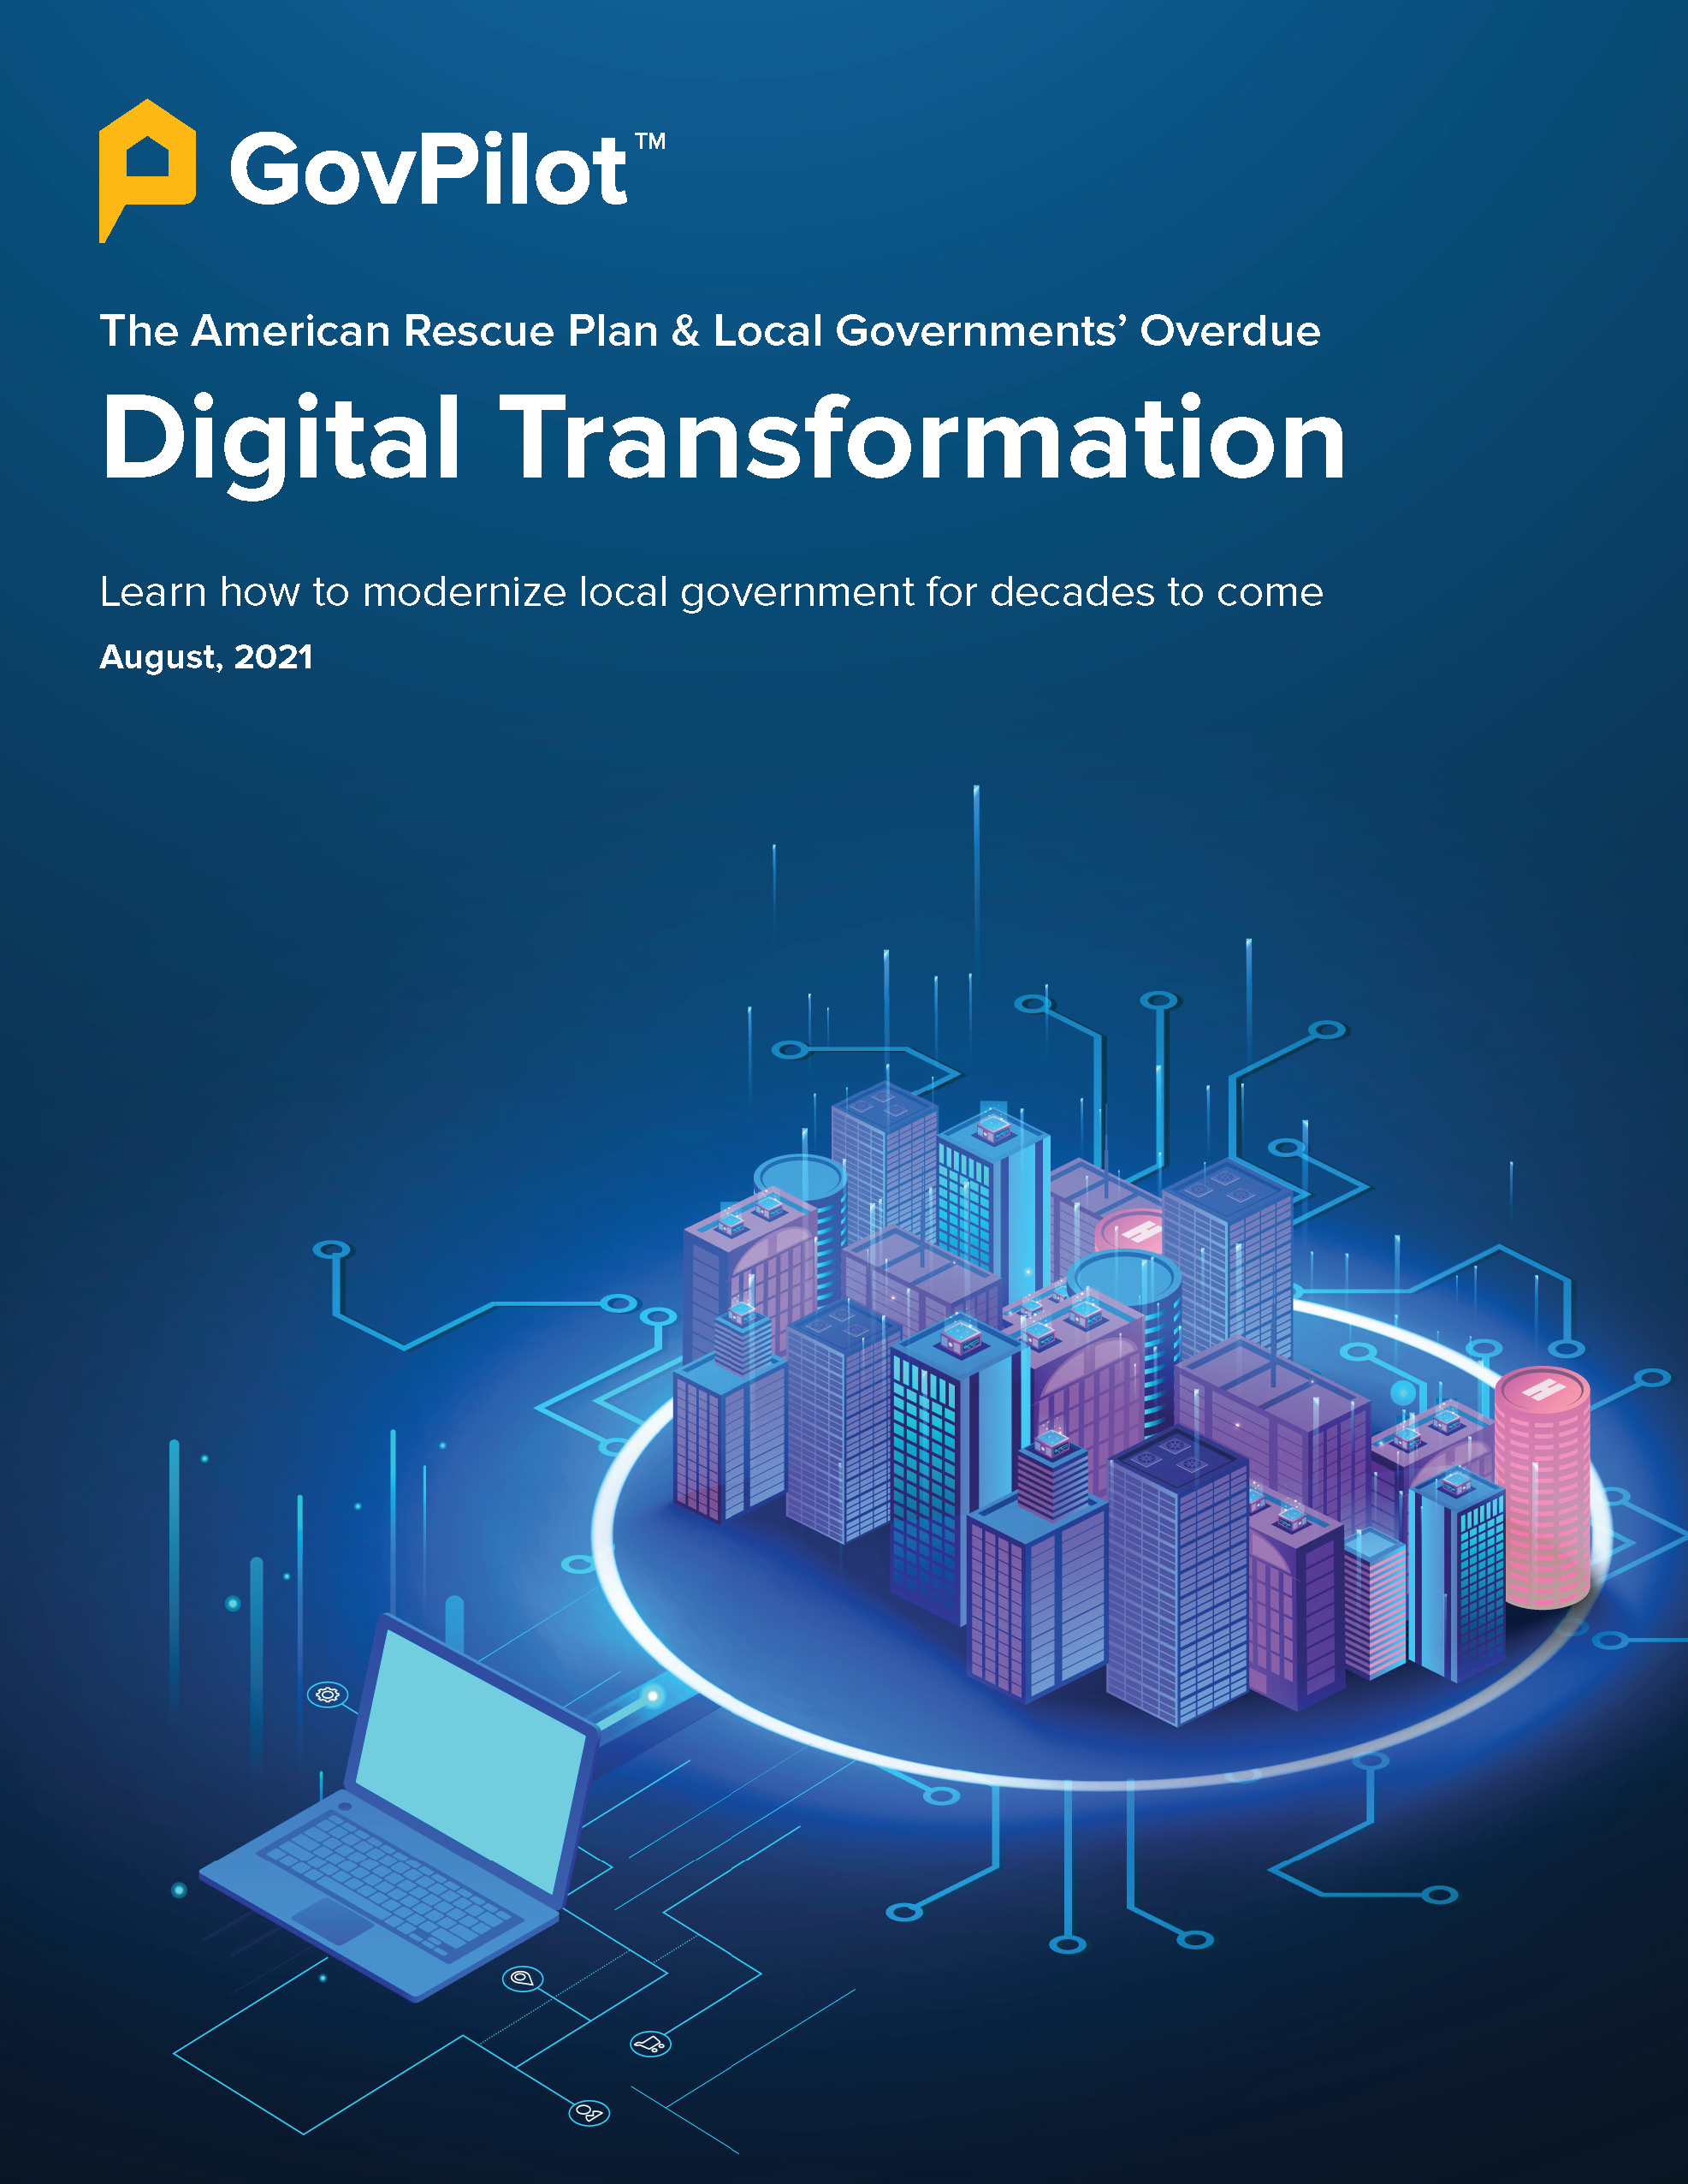 GovPilot eBook: Digital Transformation and the American Rescue Plan Act August 2021